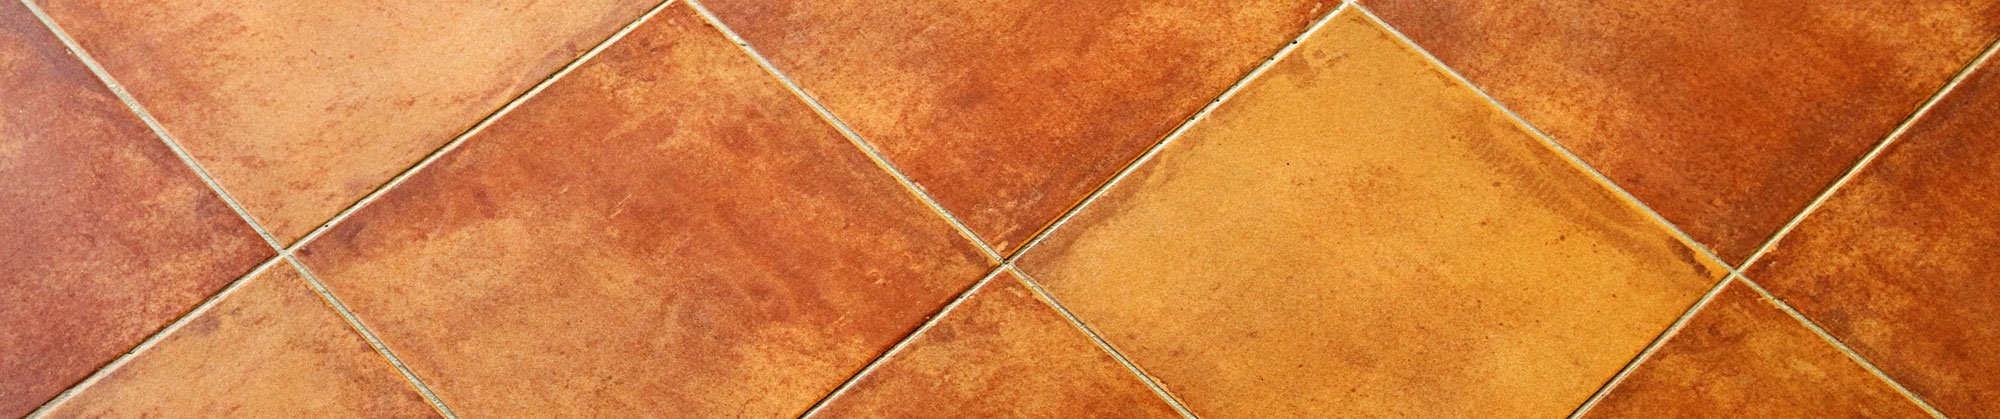 Tile Flooring, Affordable Prices, Great Selection   Carpet Corral ...